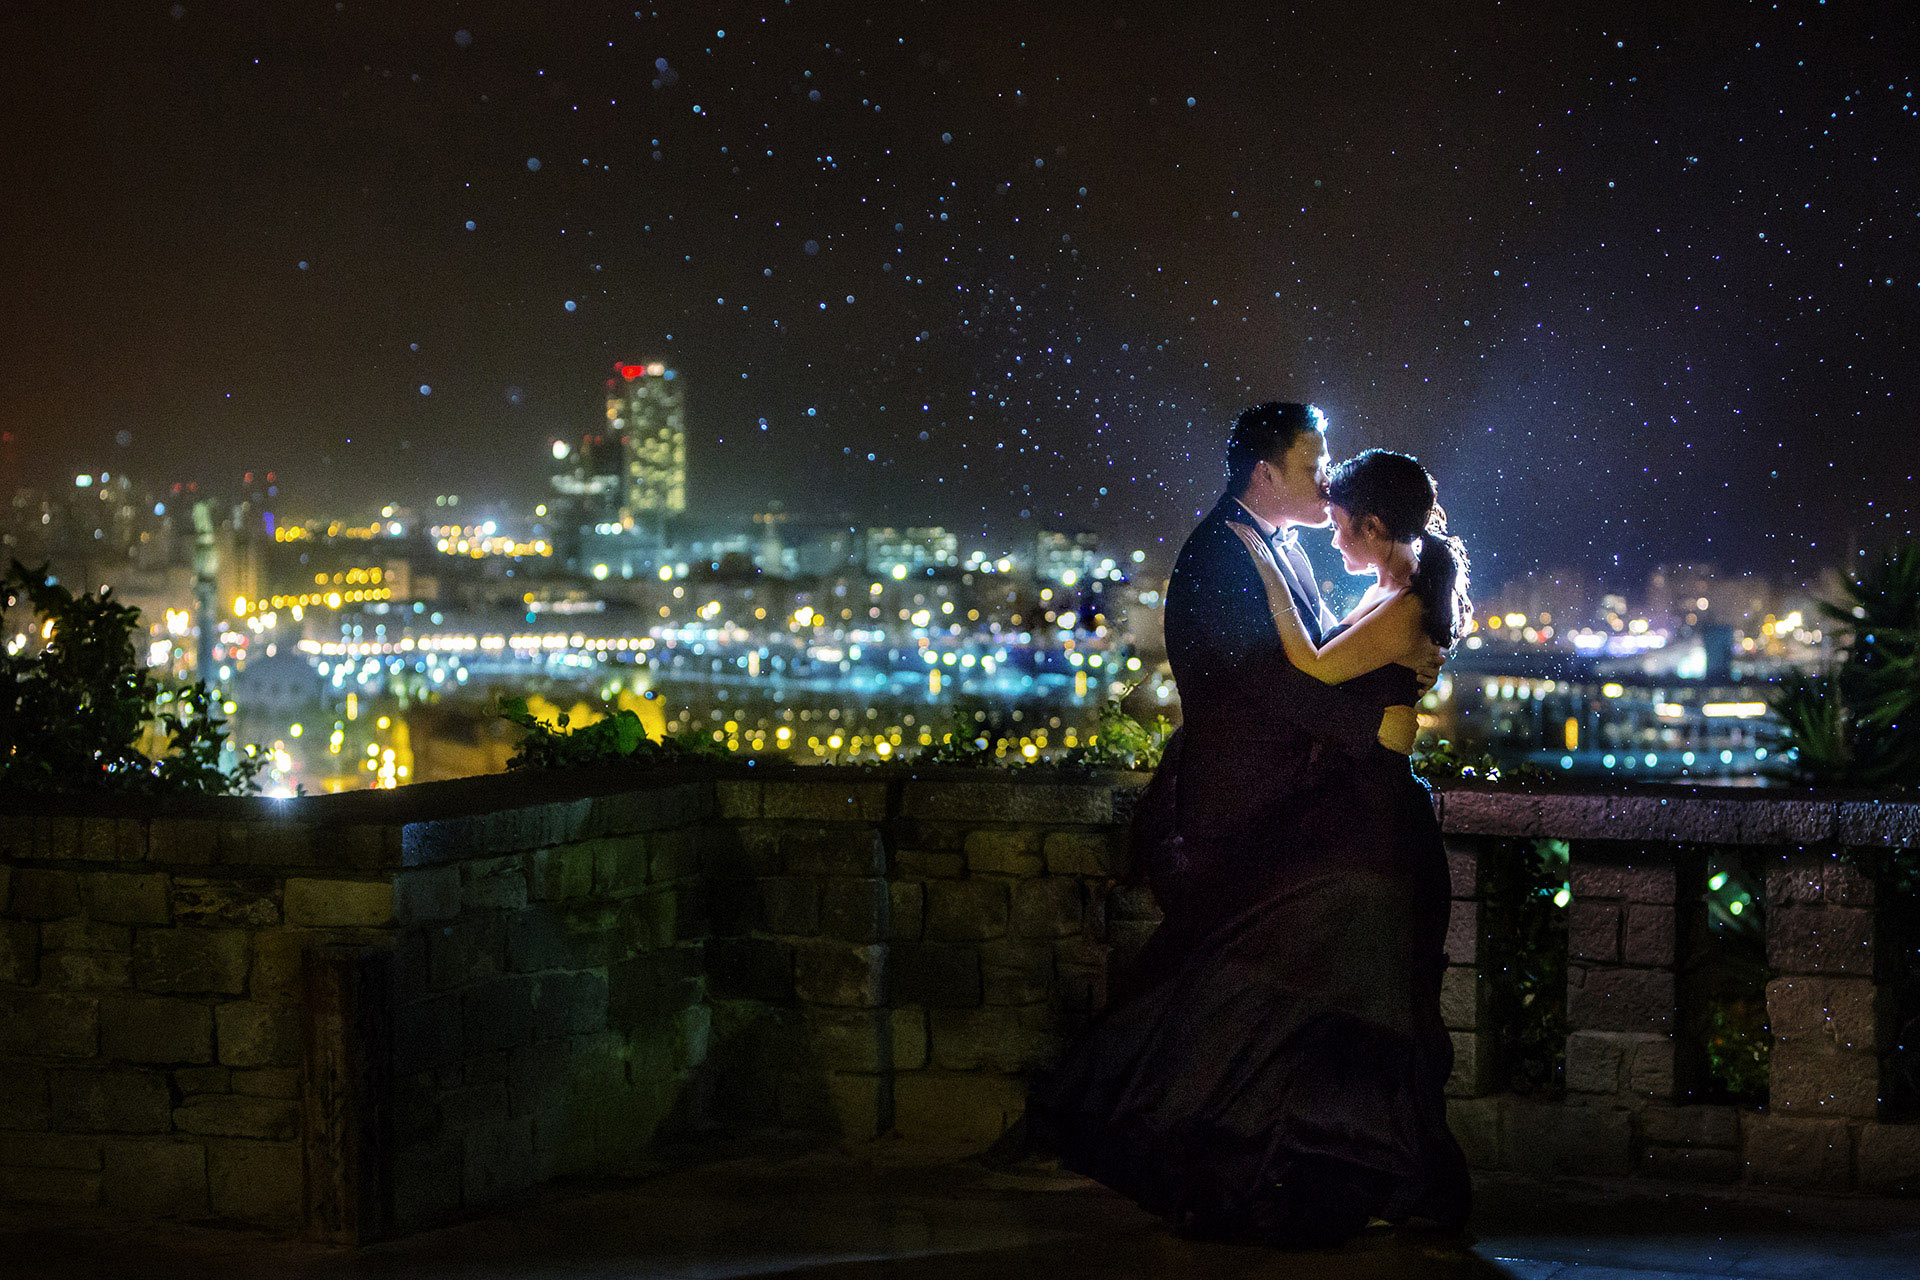 wedding photography amazing captures